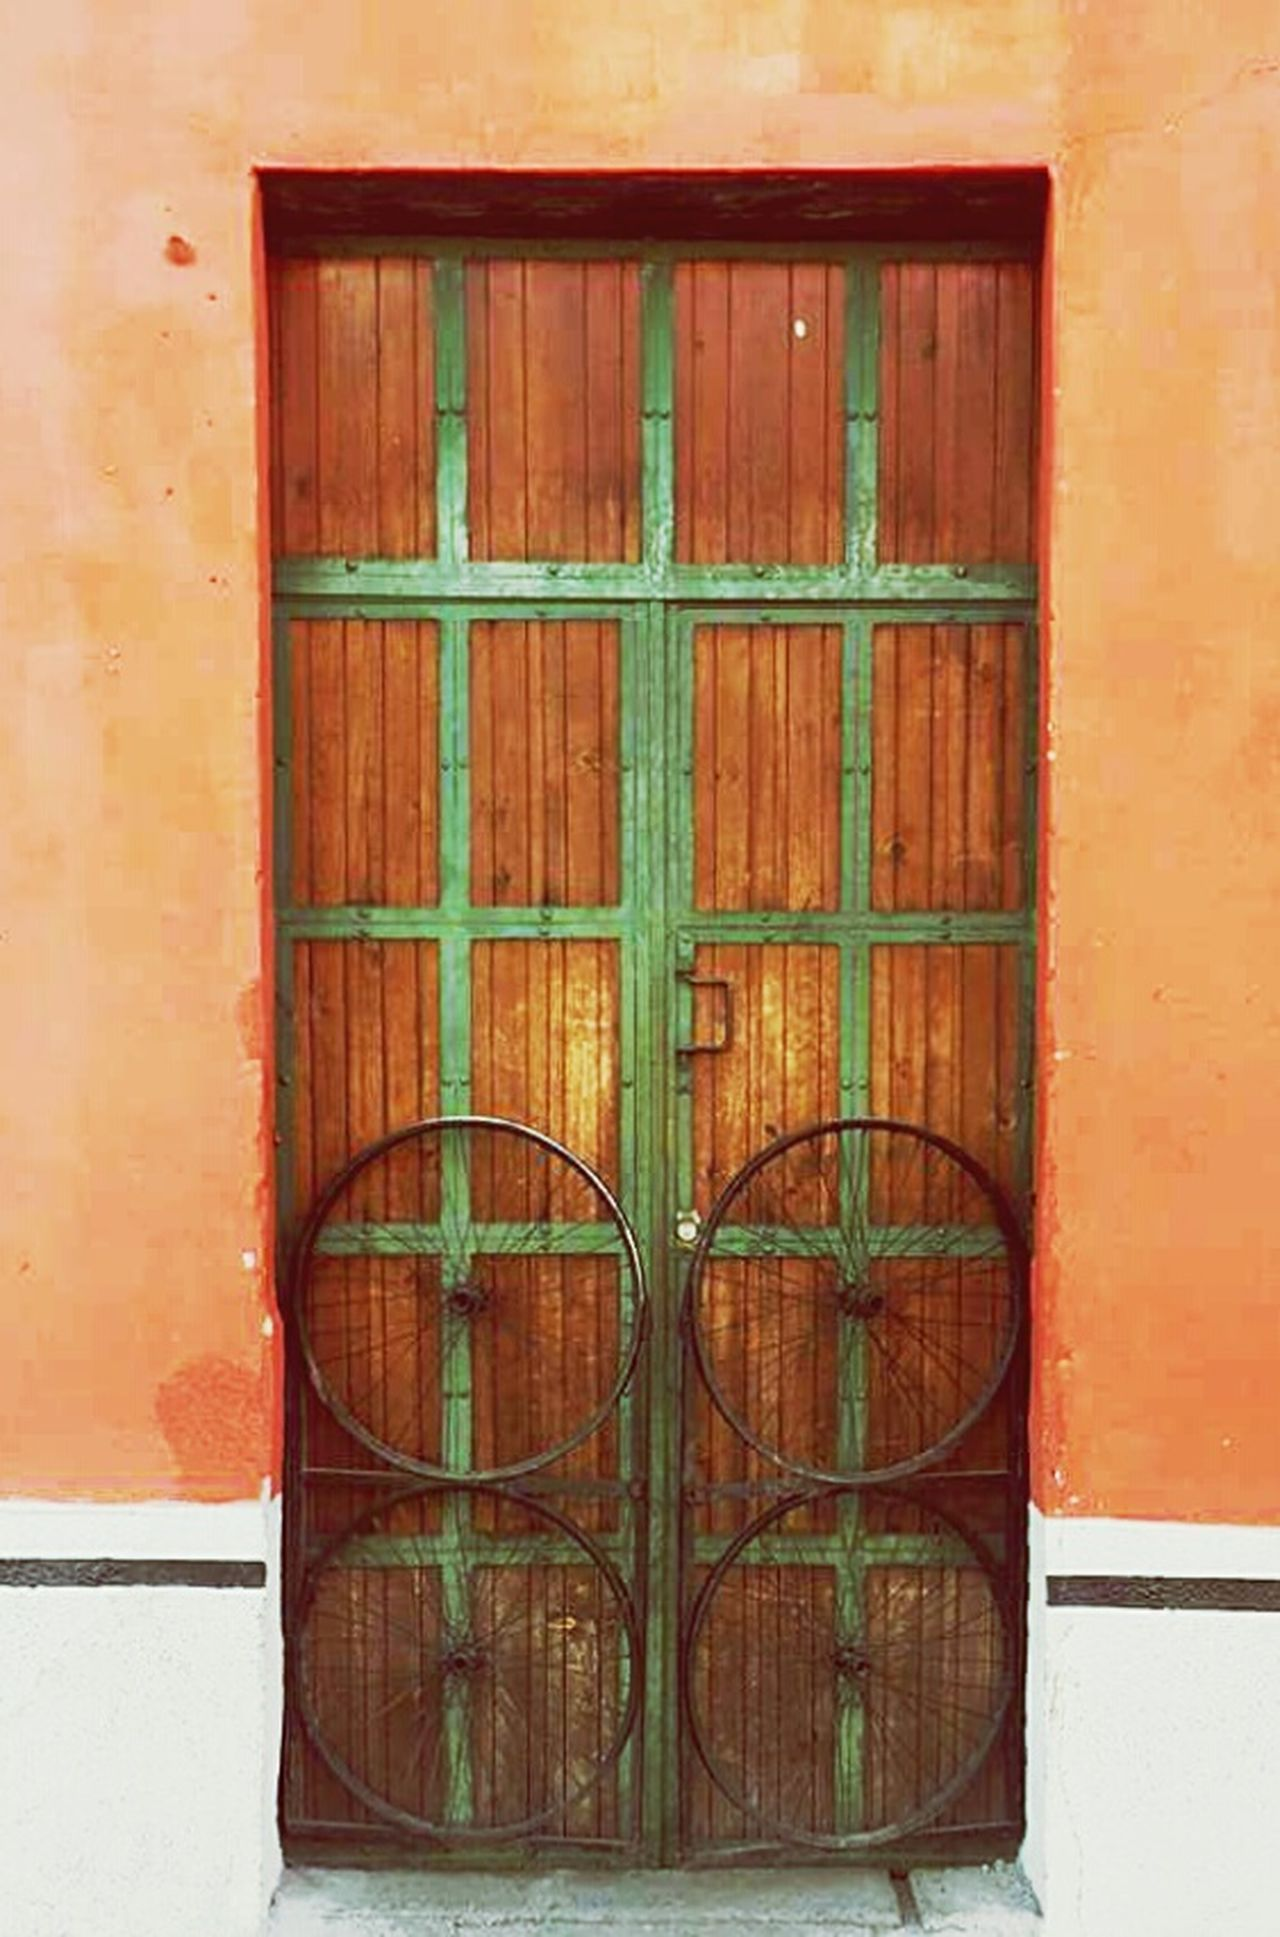 Doors Lover Outdoors Architecture_collection Internaltourism Door_series Travel Traditionalarchitecture LaPaz,LaPaz